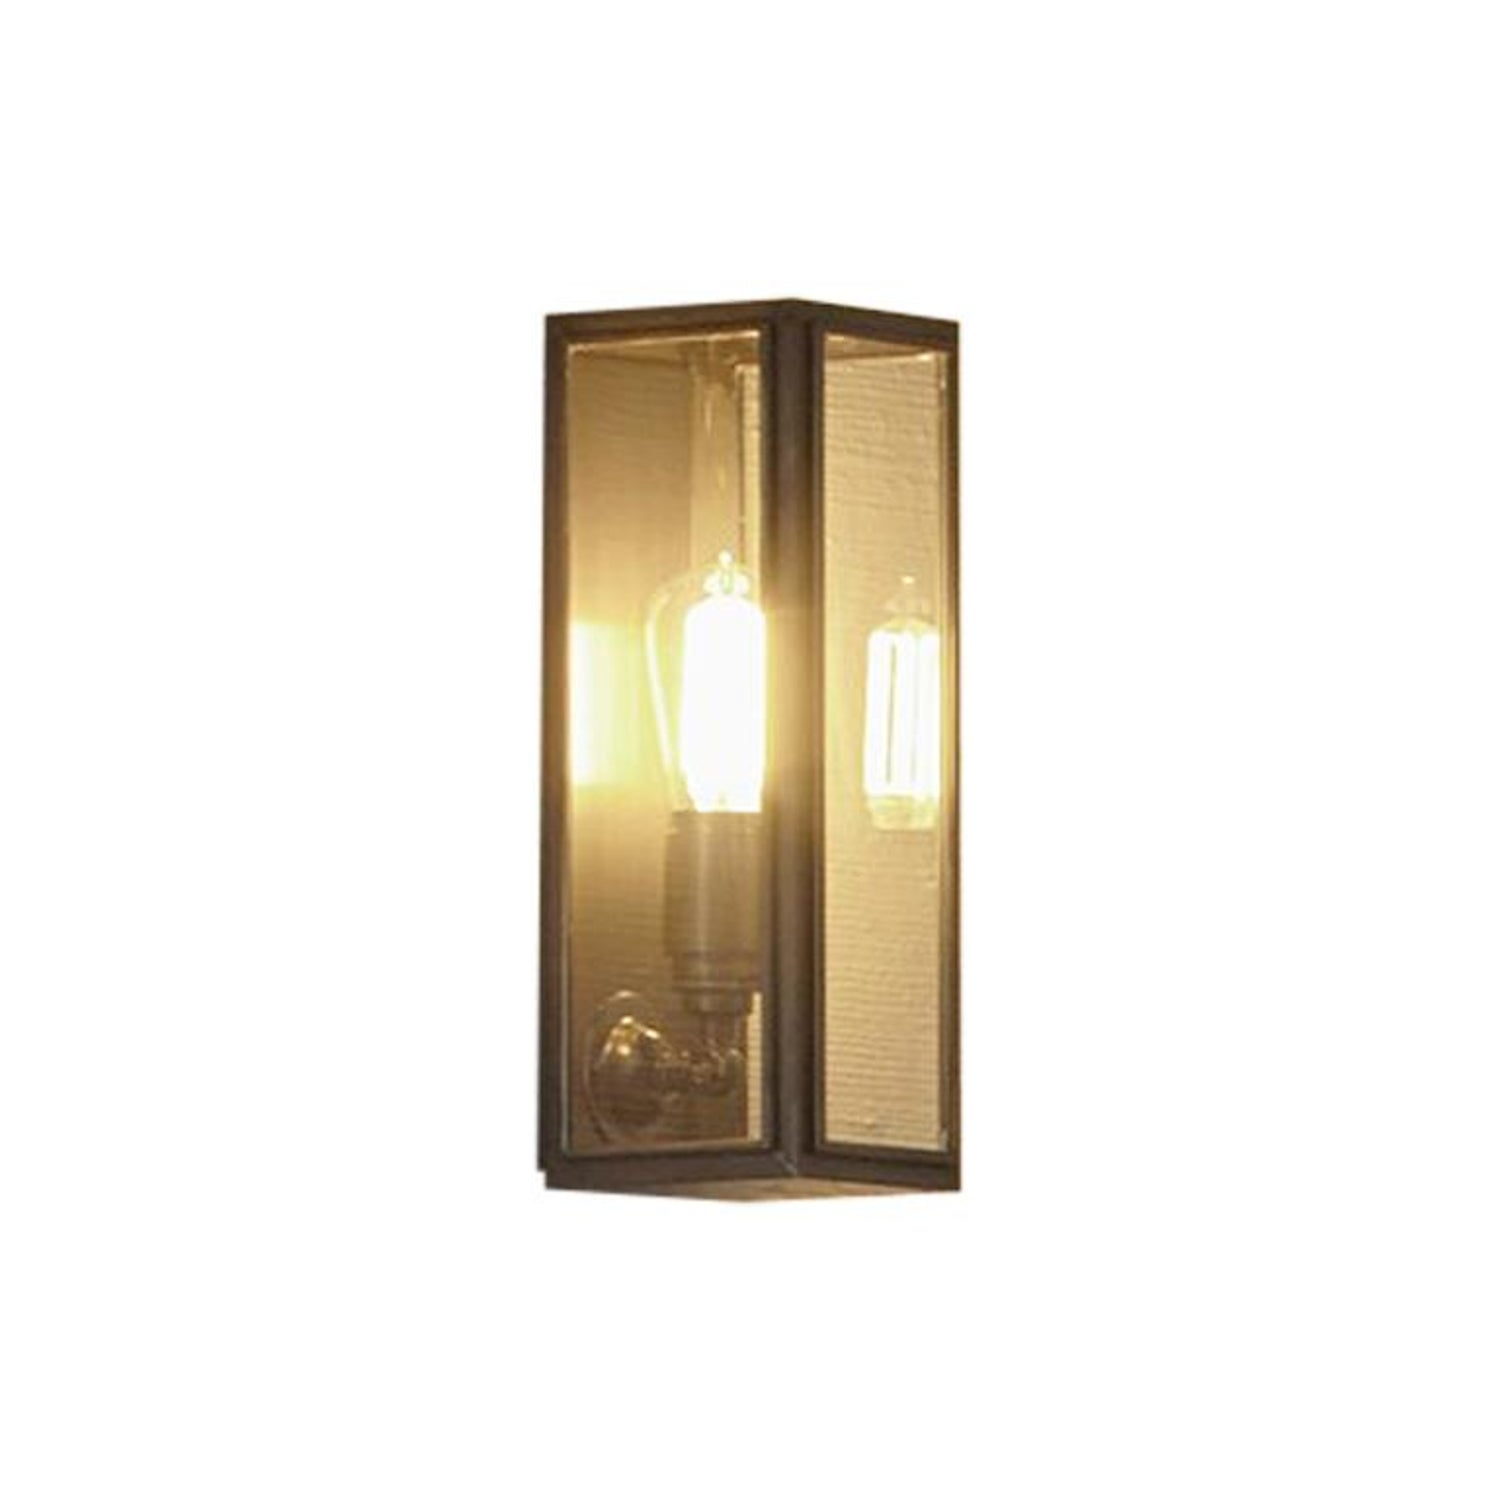 Tekna annet gauze c wall light with dark bronze finish and clear glass